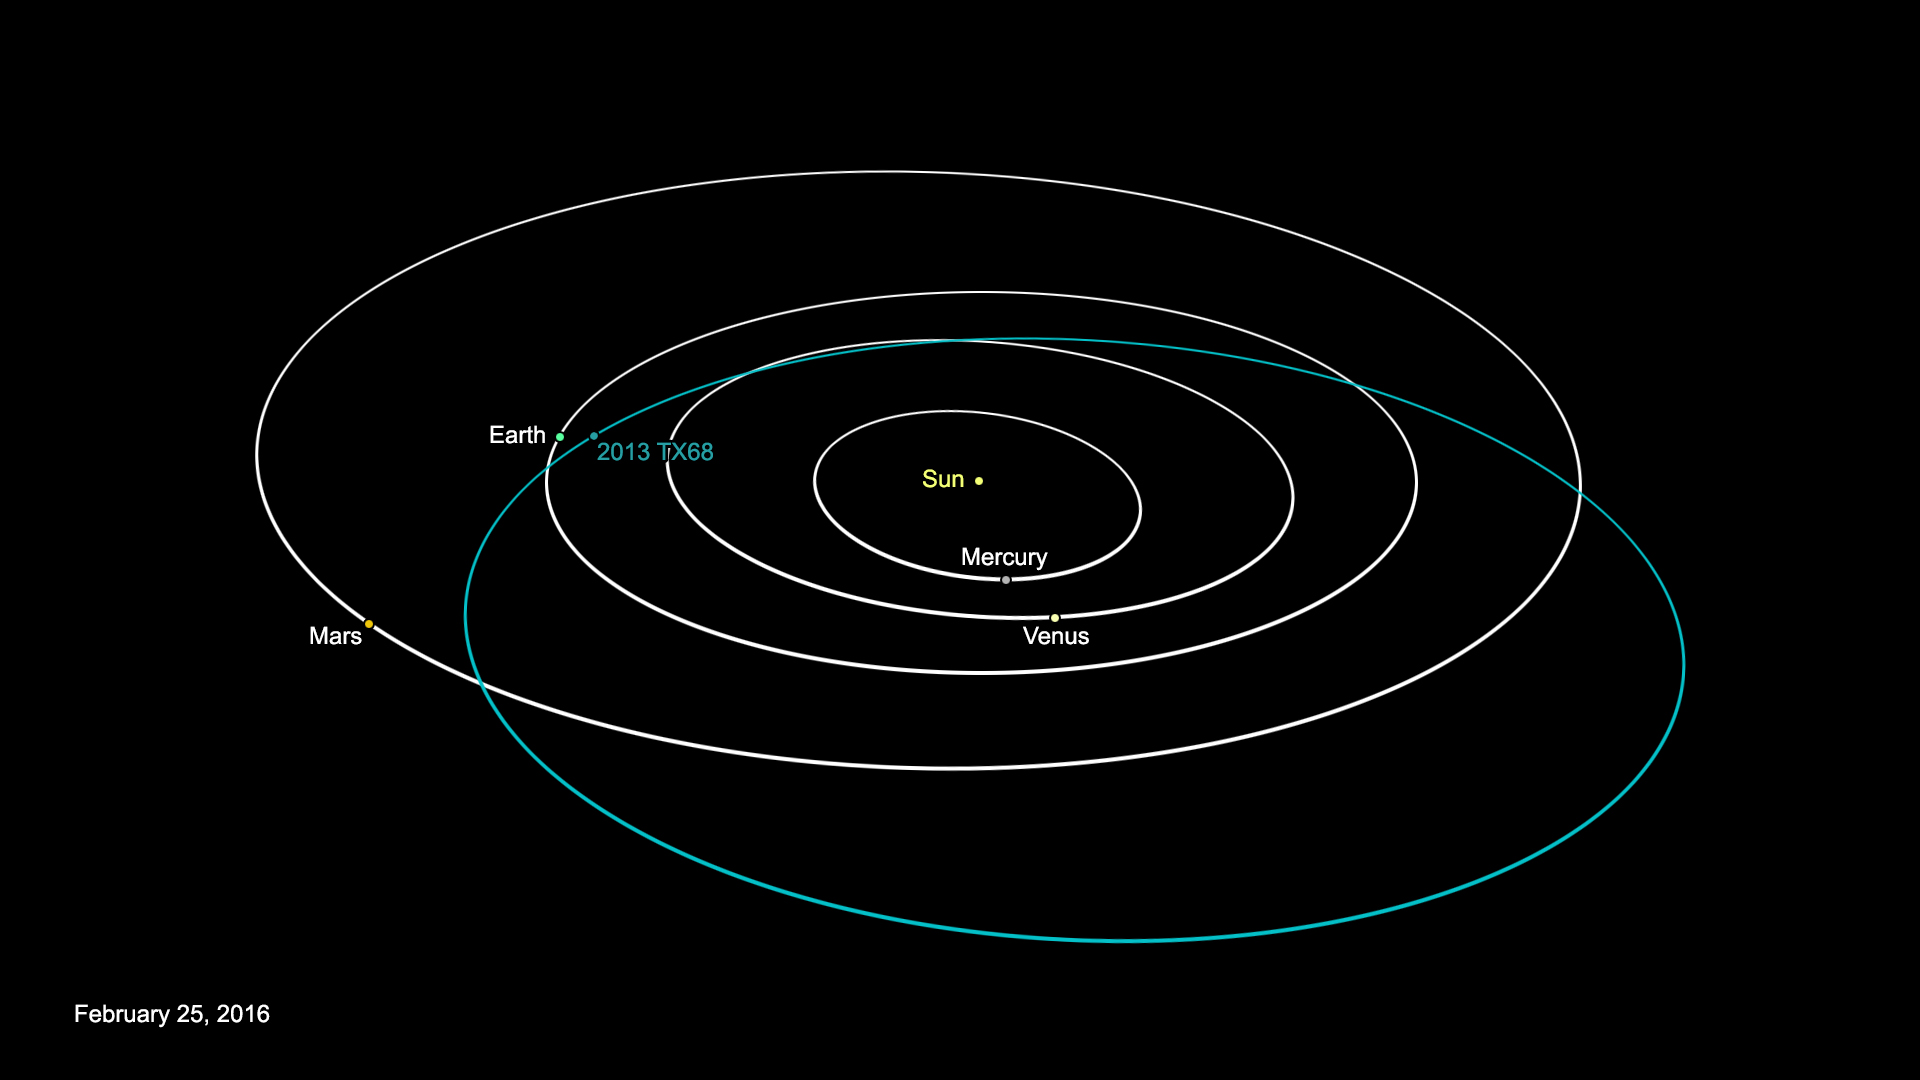 Slippery Asteroid Surprises Scientists With Early Earth Flyby